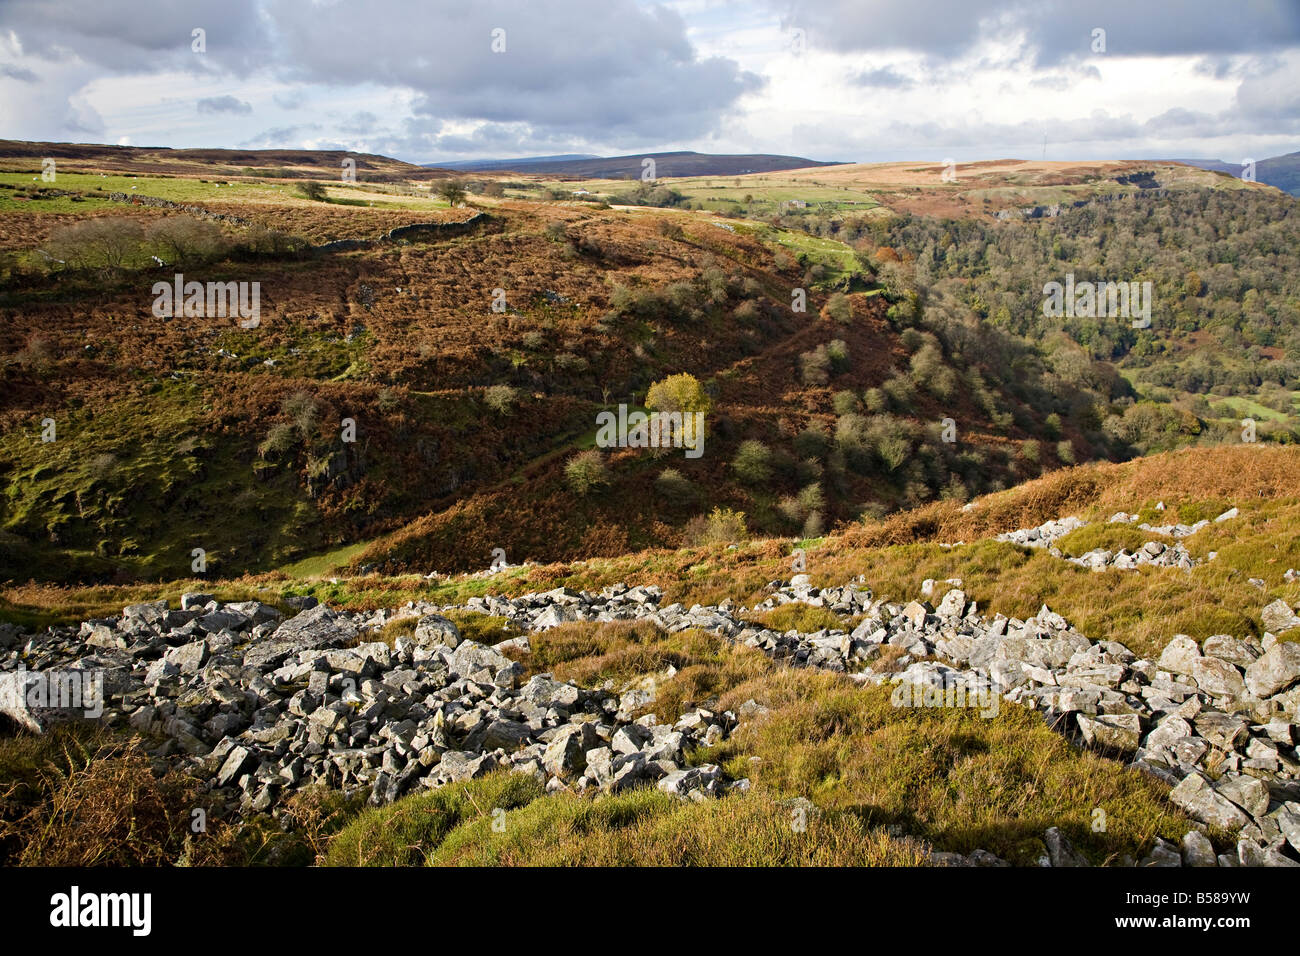 Industrial landscape with old mining inclines Pwll Du hillside near Blaenavon Wales UK - Stock Image